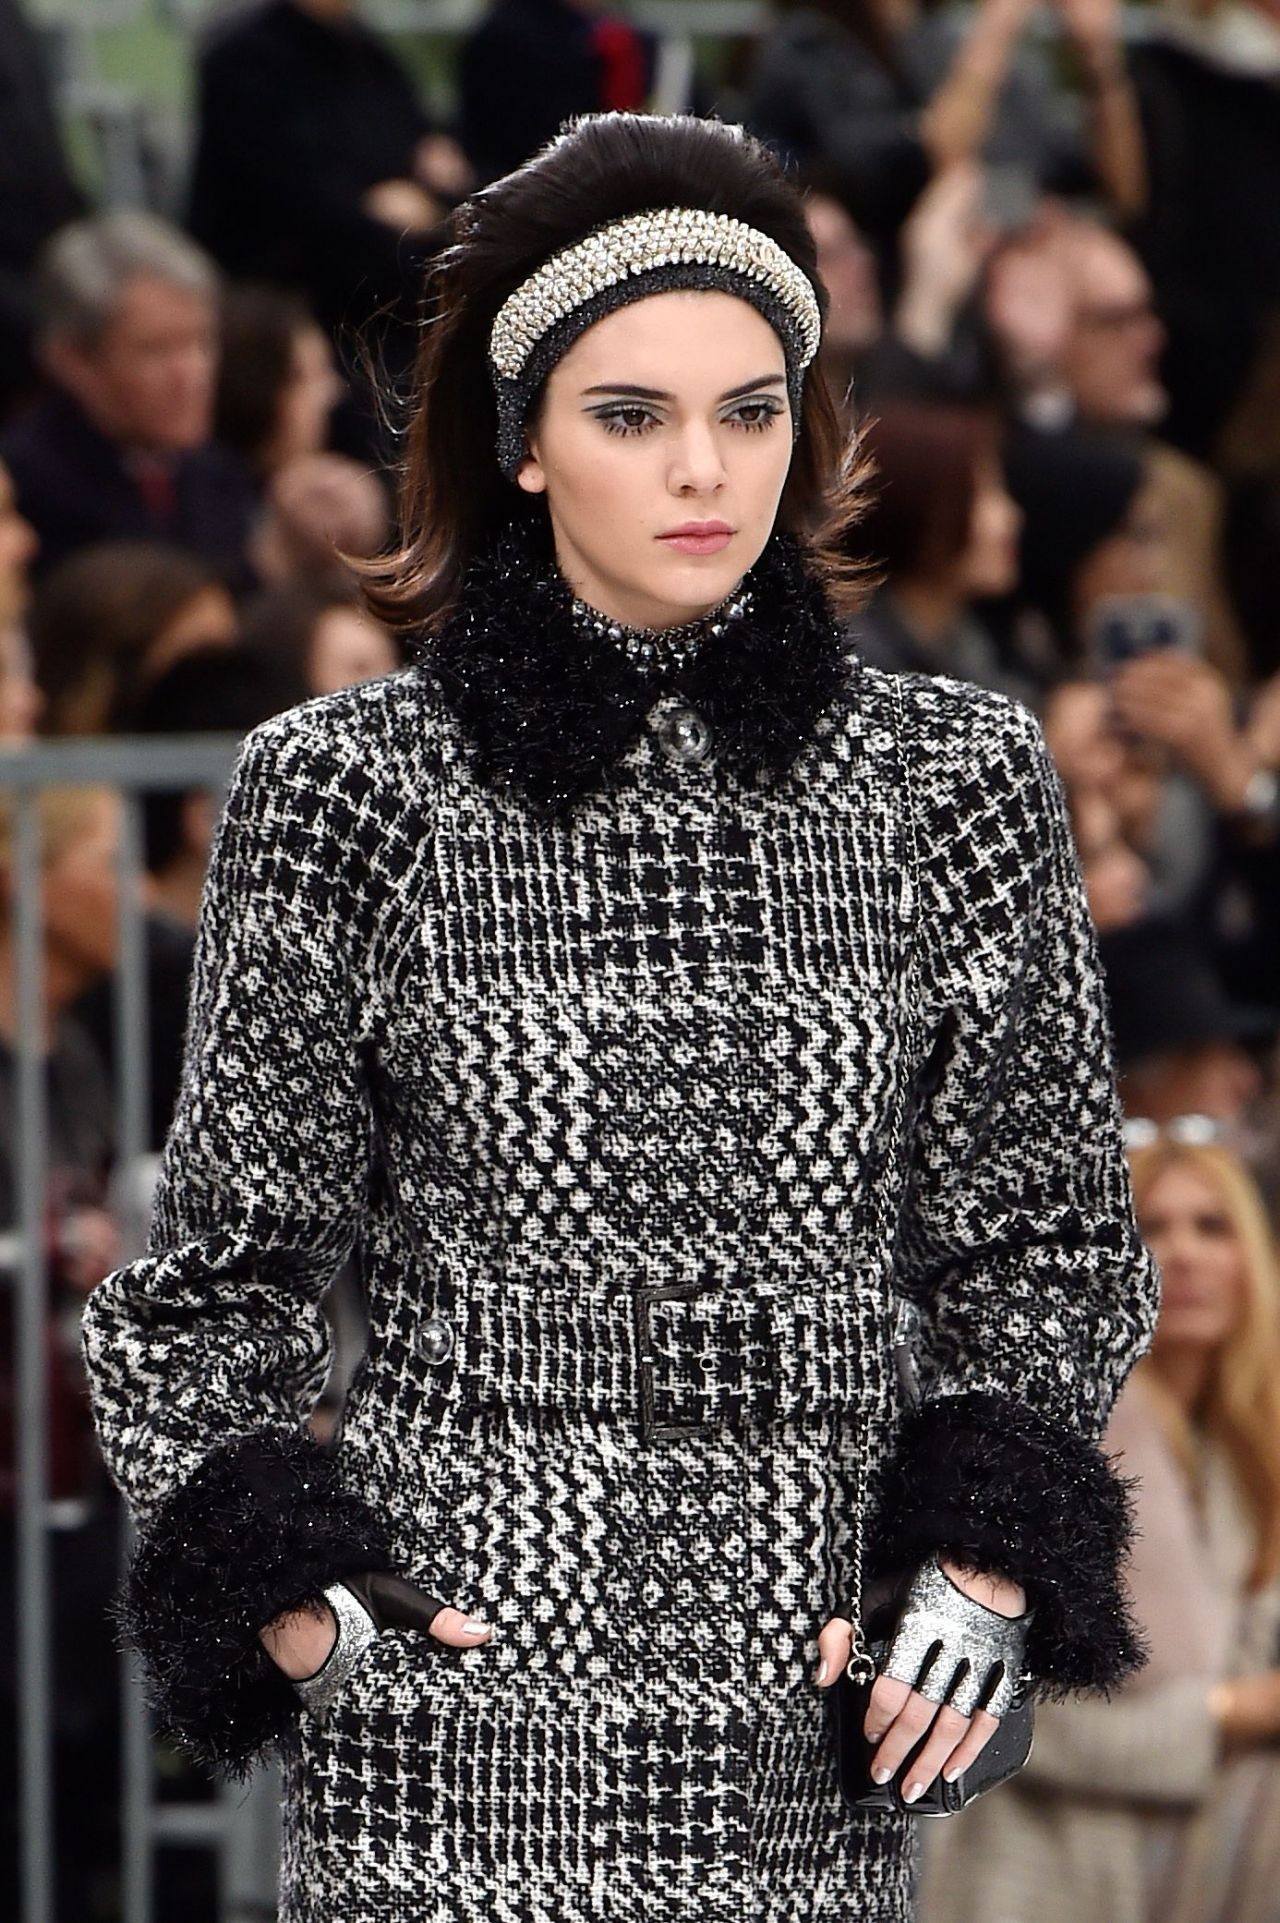 kendall jenner walks chanel show paris fashion week 3 7 2017. Black Bedroom Furniture Sets. Home Design Ideas